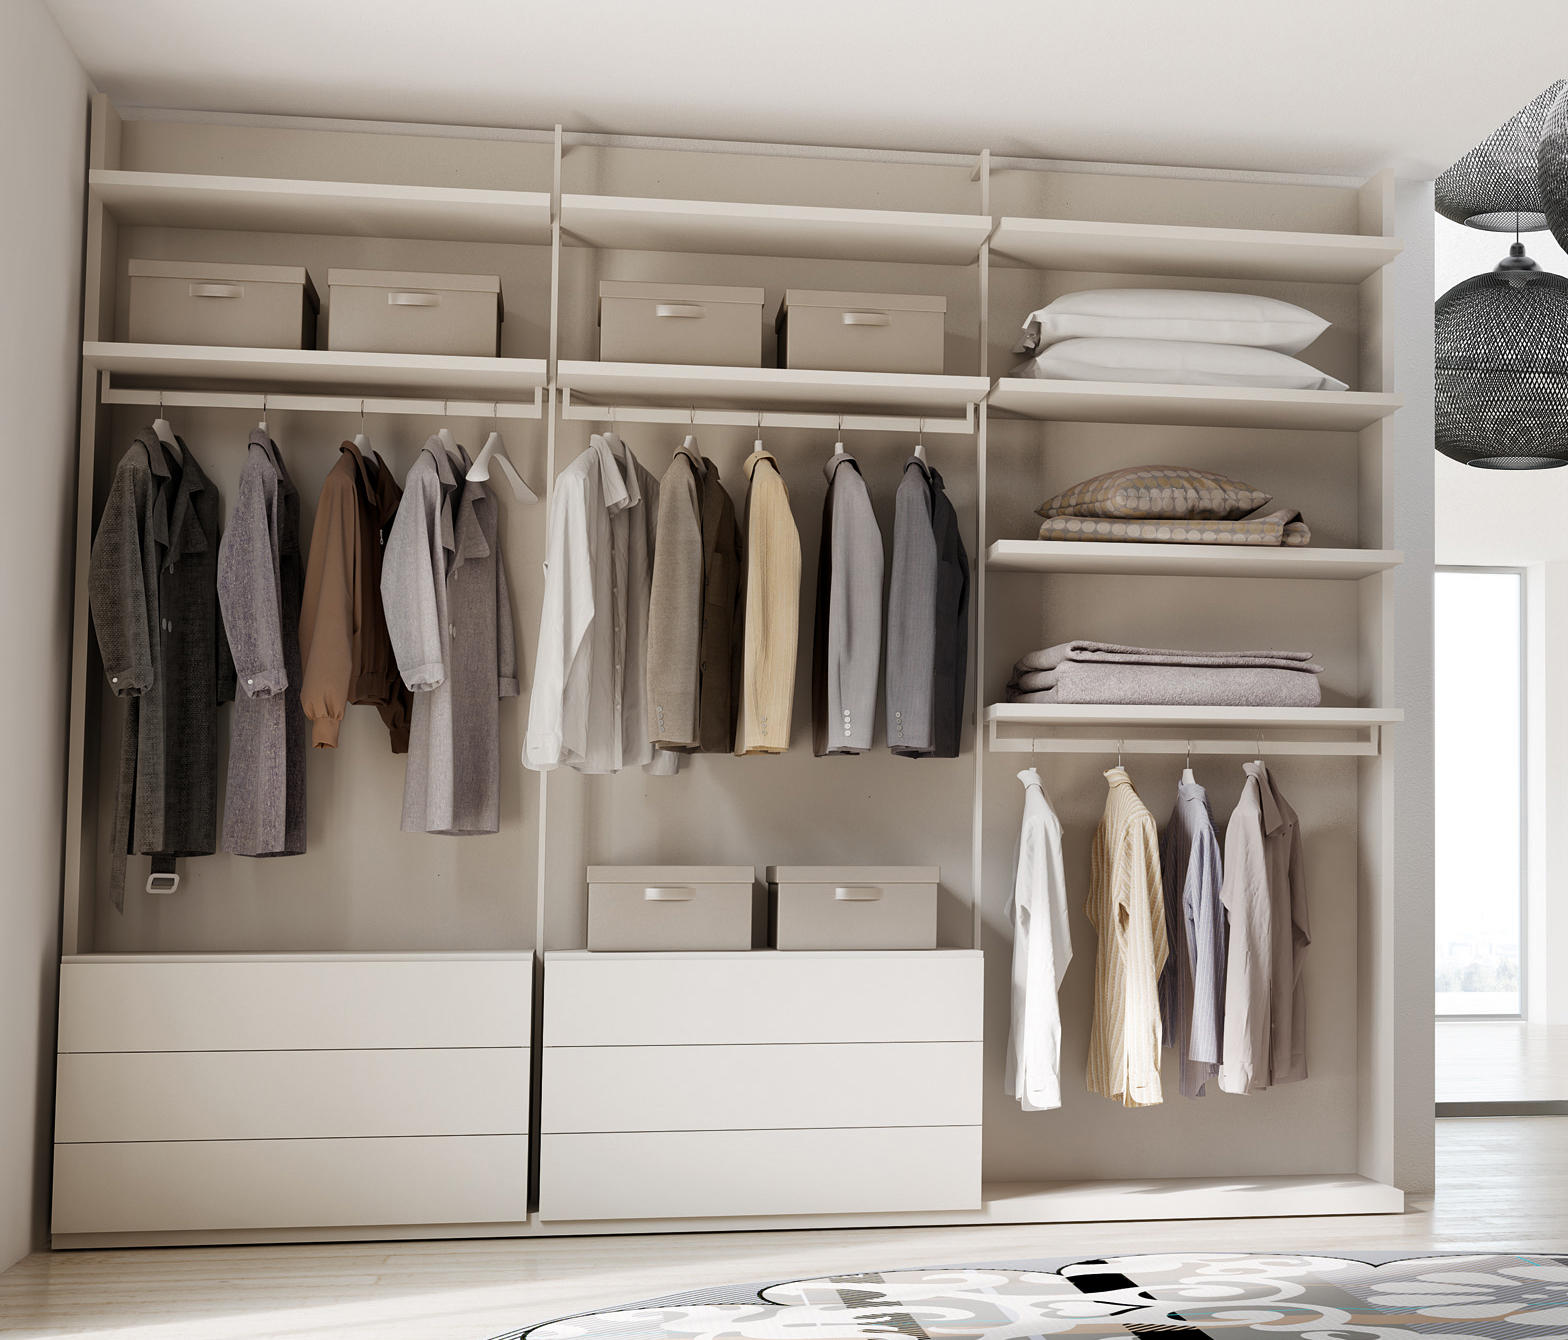 Cabina DR | Dressing Room By CACCARO | Walk In Wardrobes ...